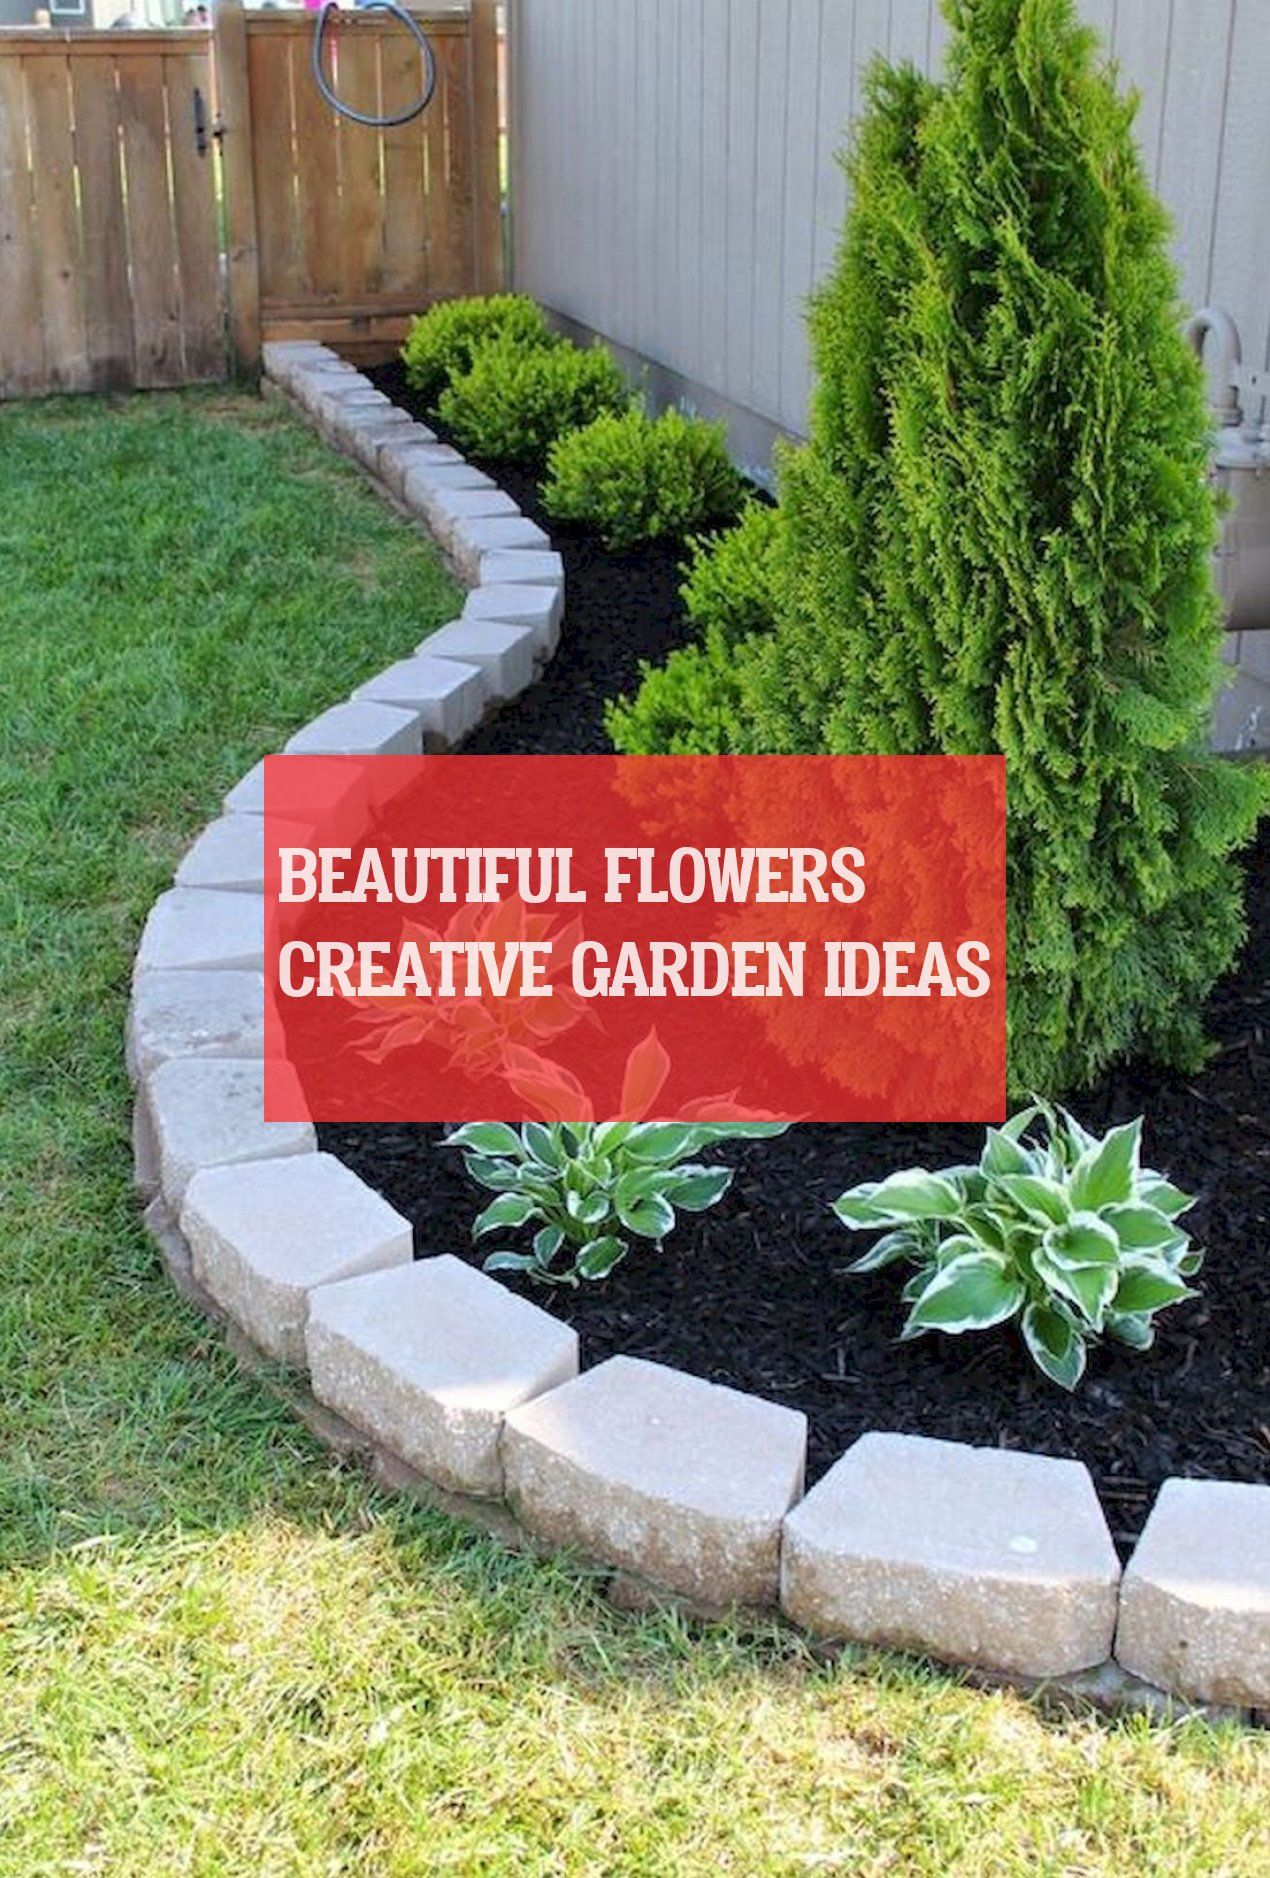 Beautiful Flowers creative garden ideas